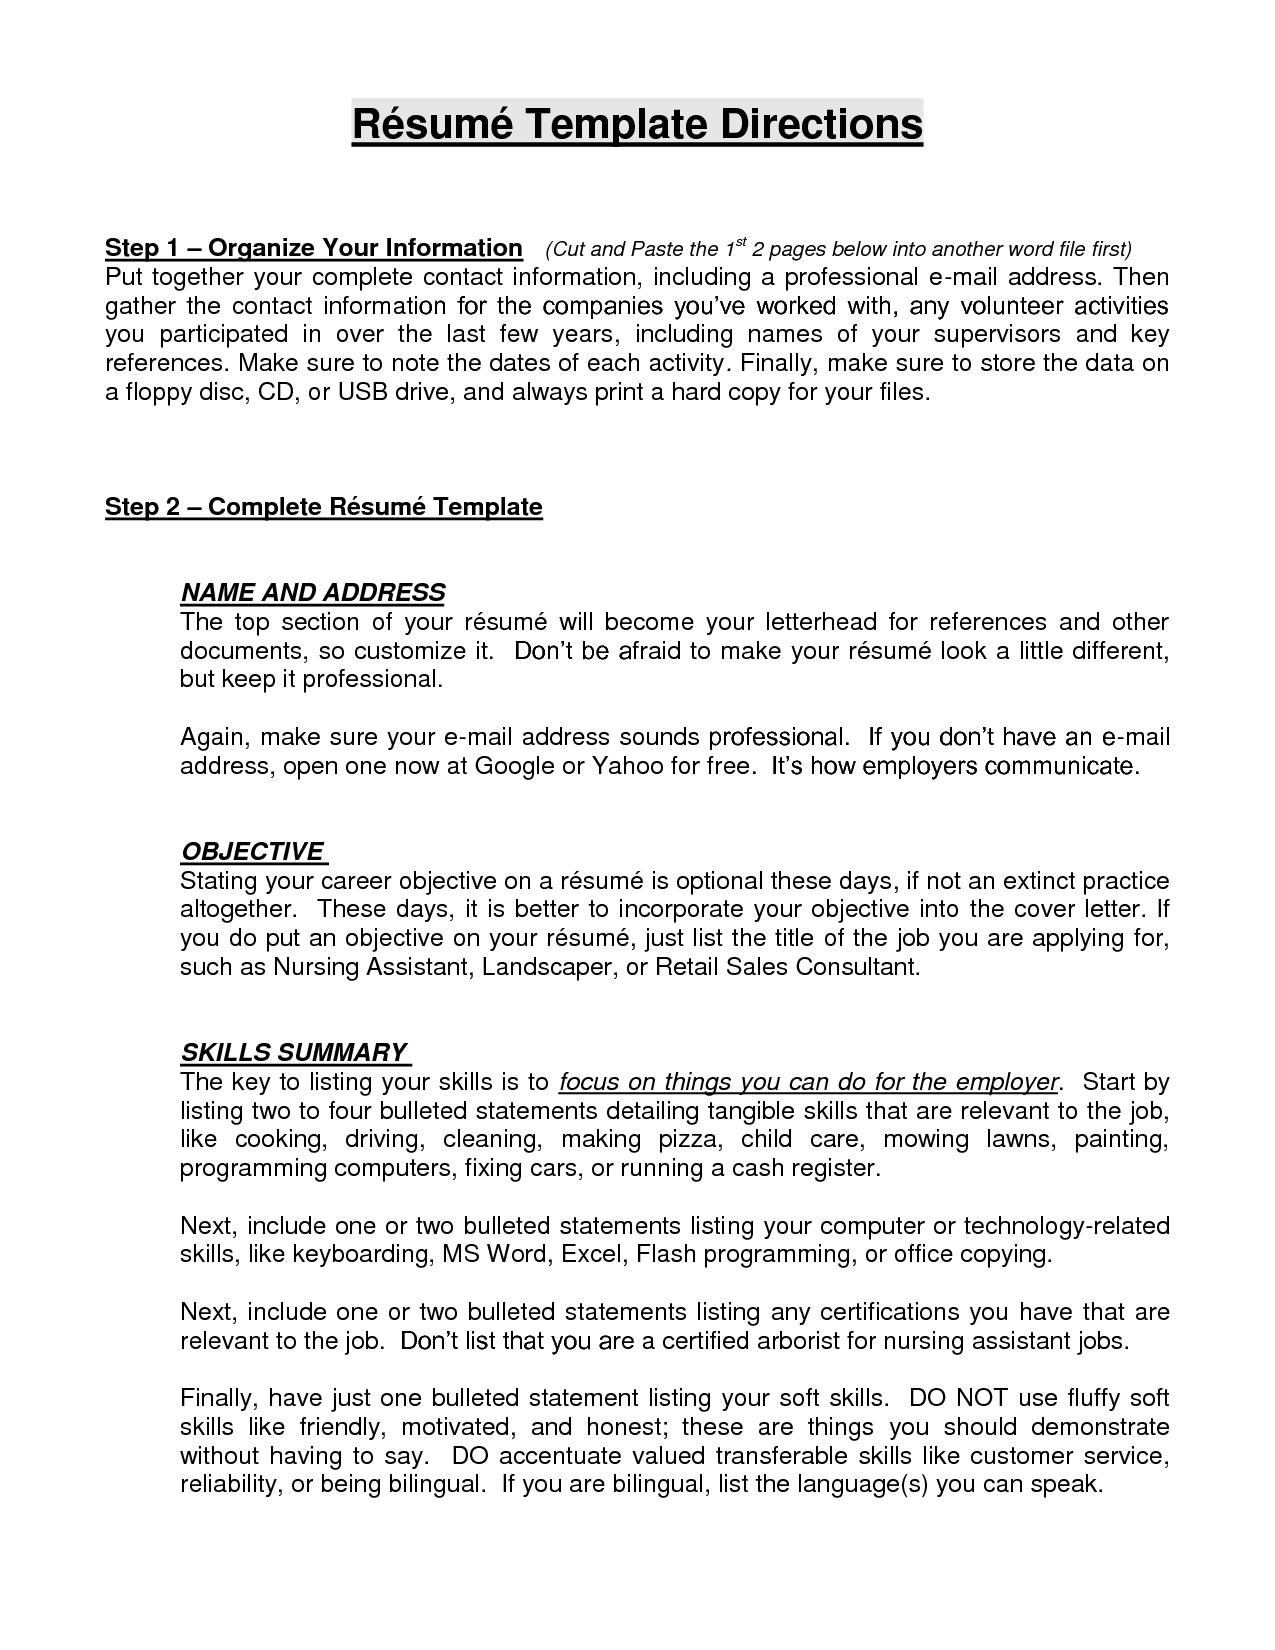 resume templates resume writing resume examples cover